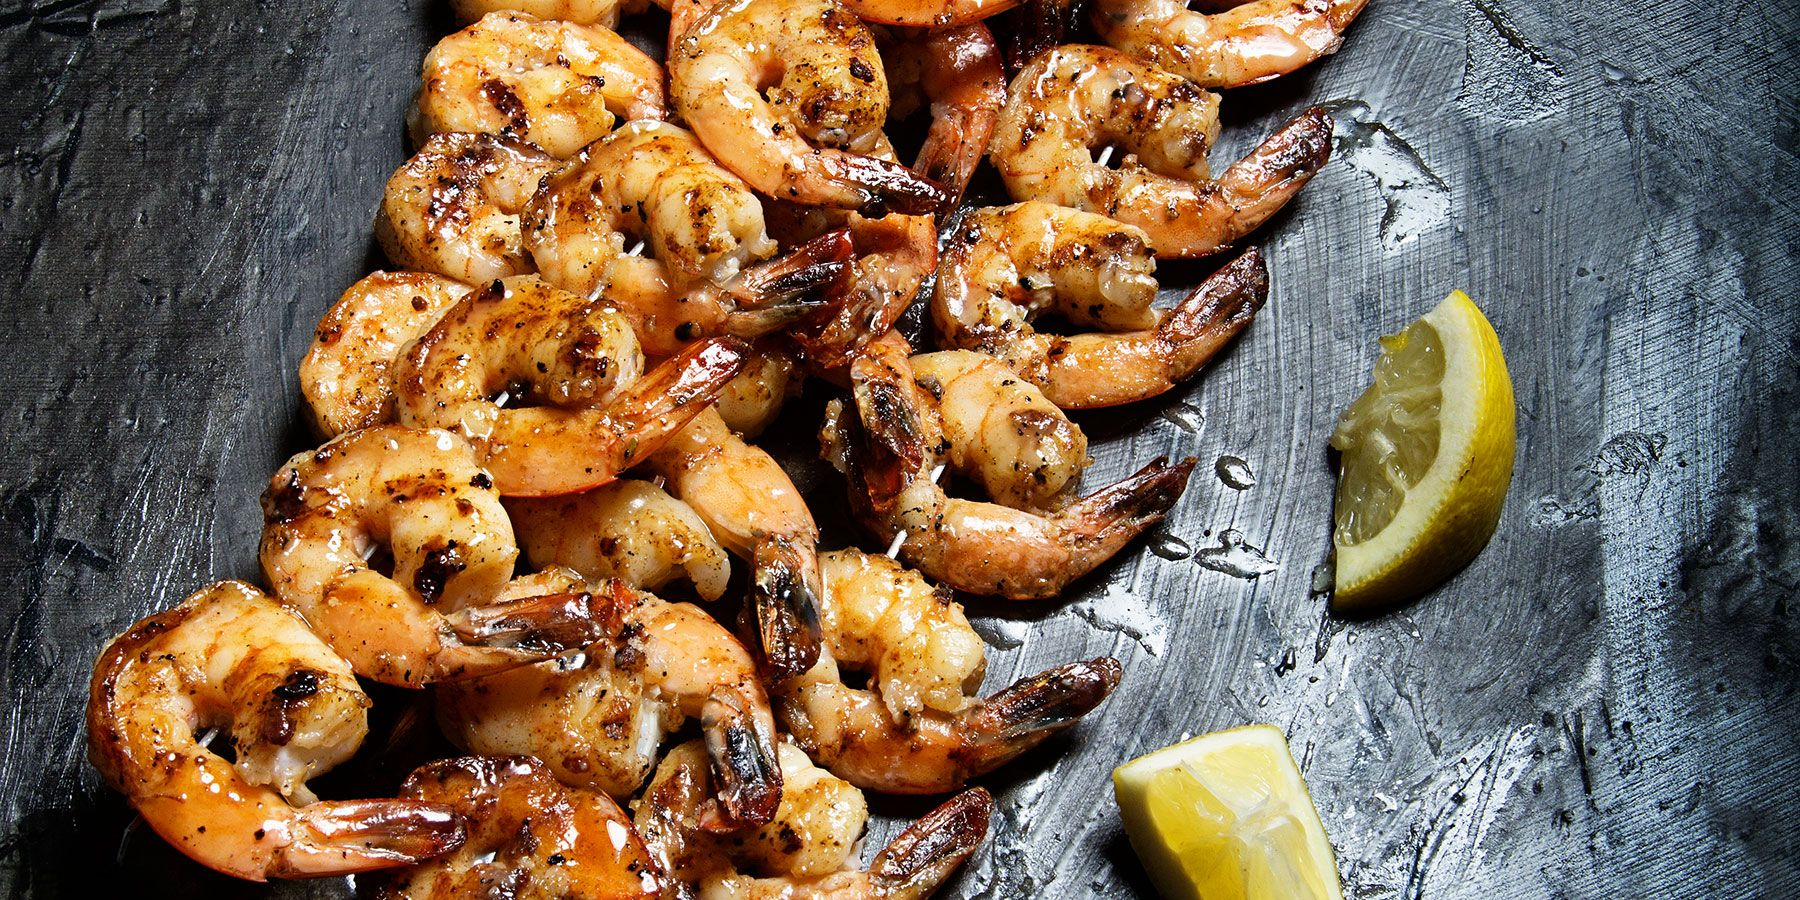 Grilled Shrimp with Maker's Mark Butter Sauce